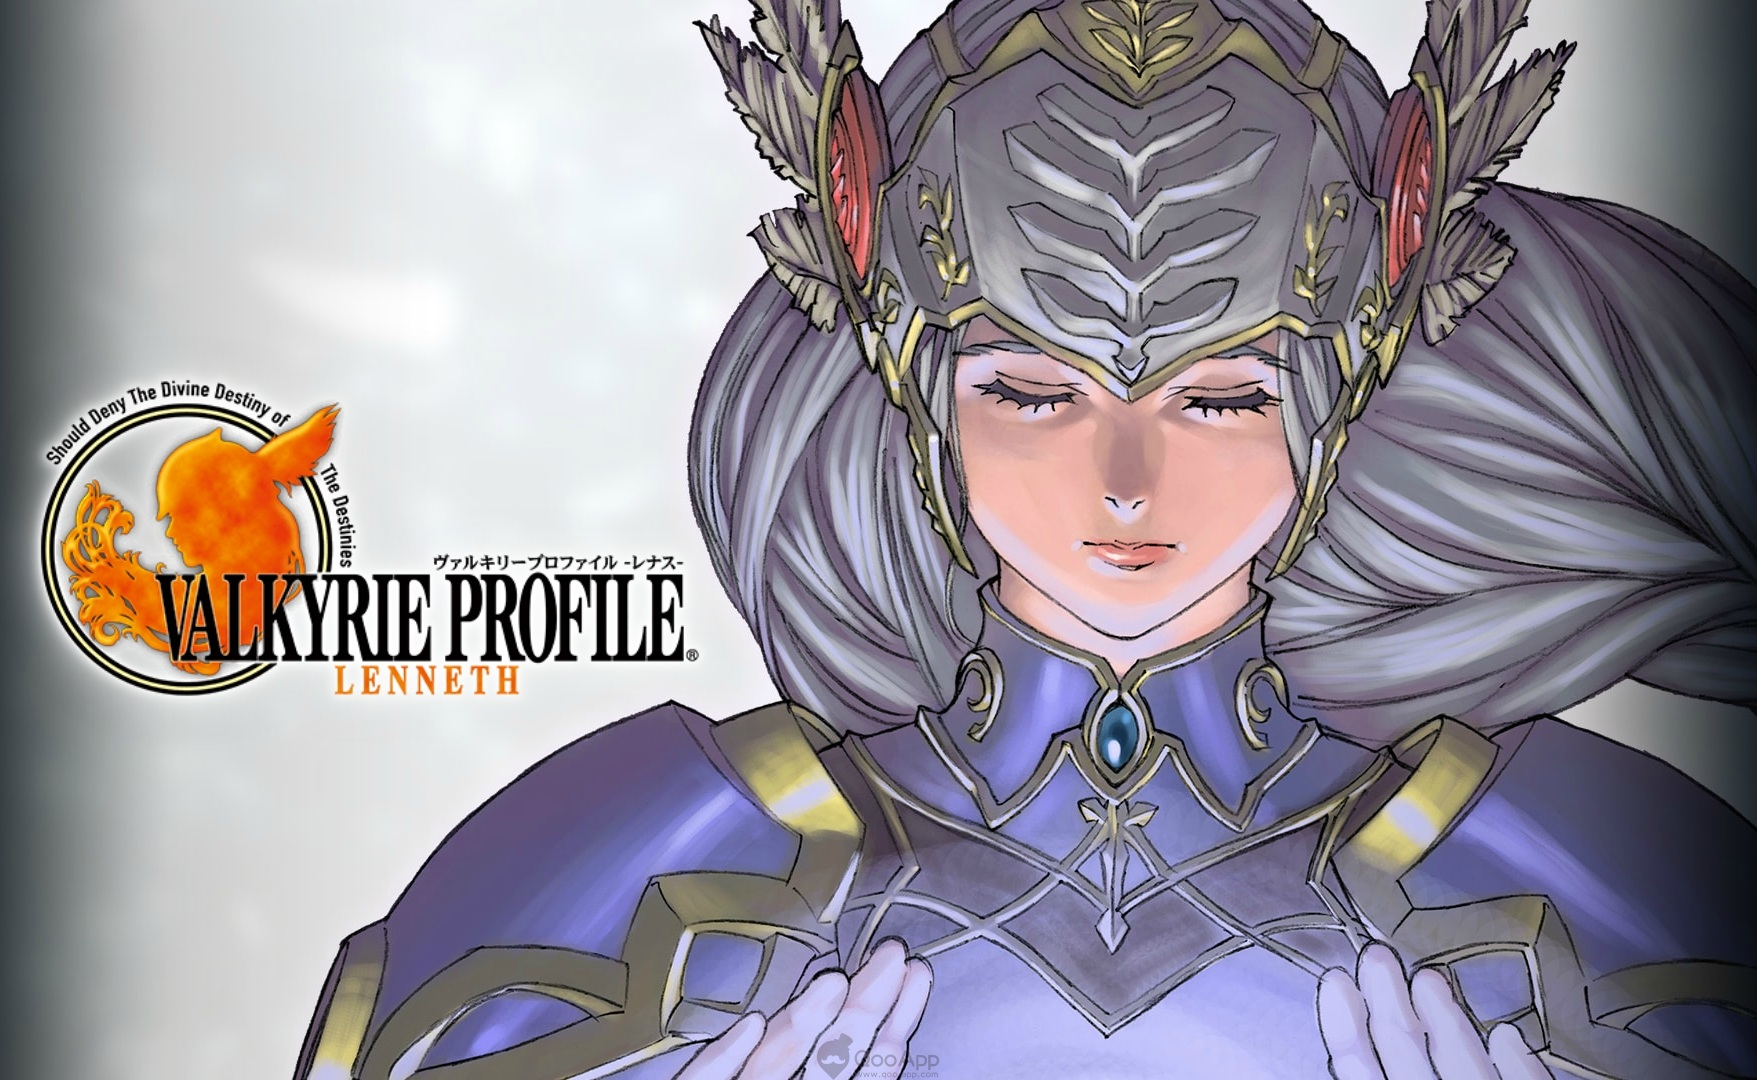 VALKYRIE PROFILE -LENNETH